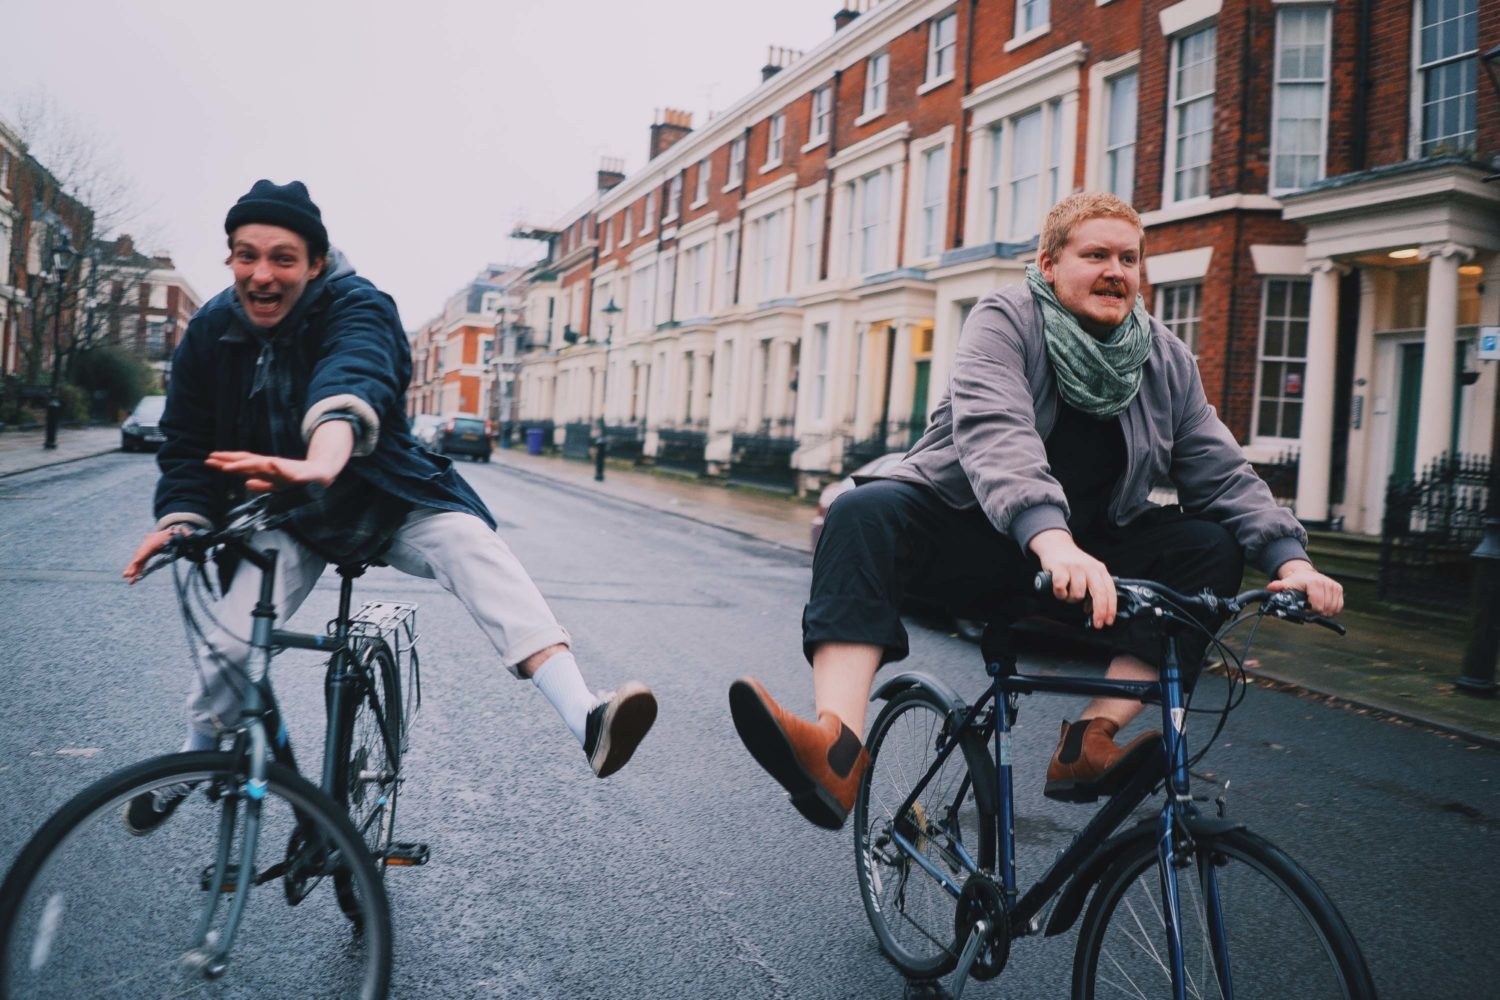 Mount Kimbie share their video for 'Blue Train Lines' featuring King Krule